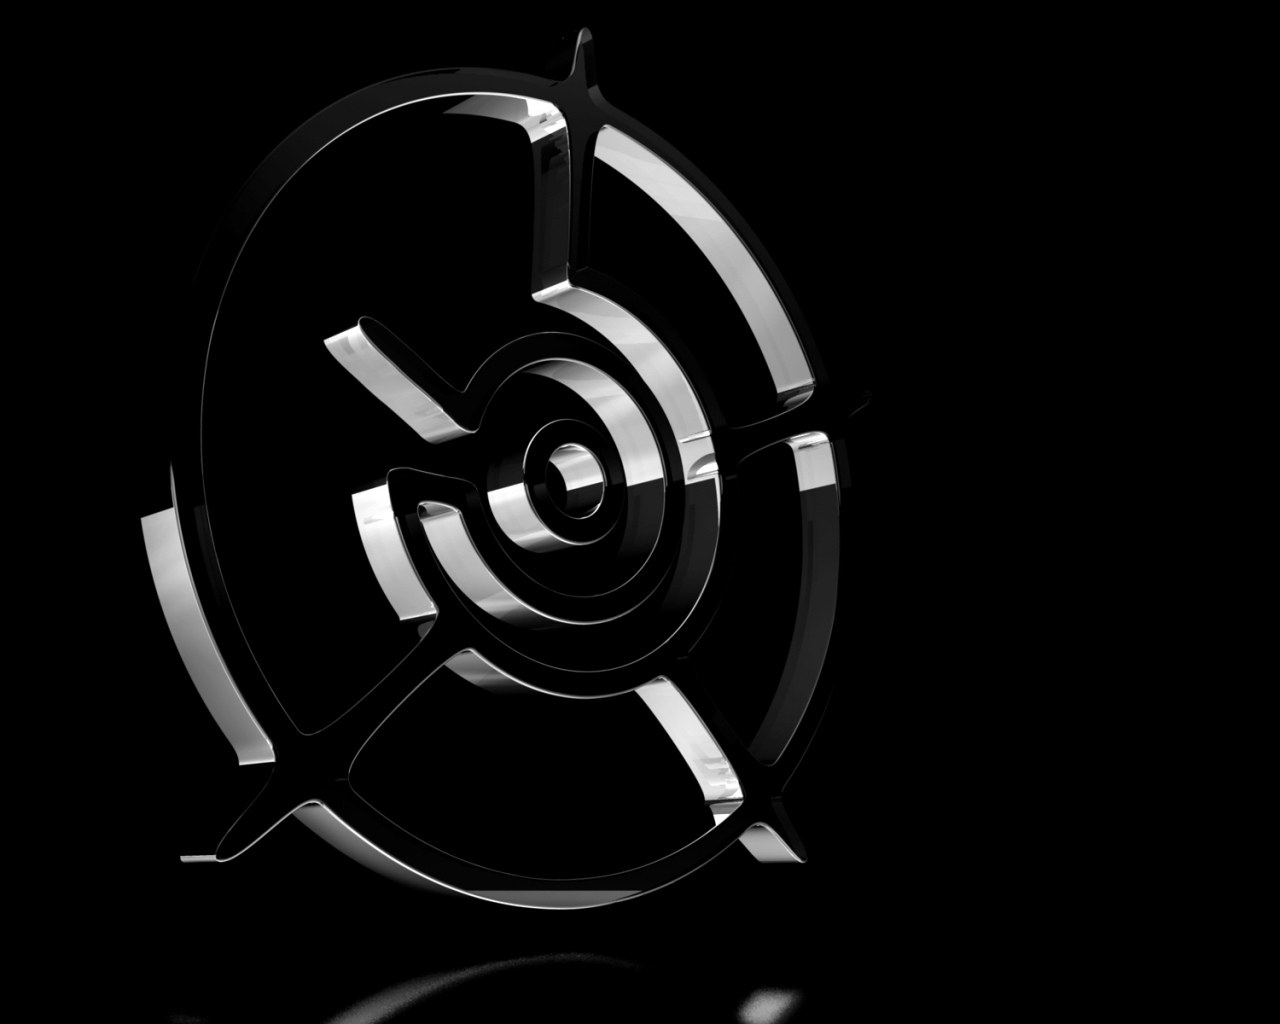 Amazing wallpapers black white wallpapers black and for Black and silver 3d wallpaper